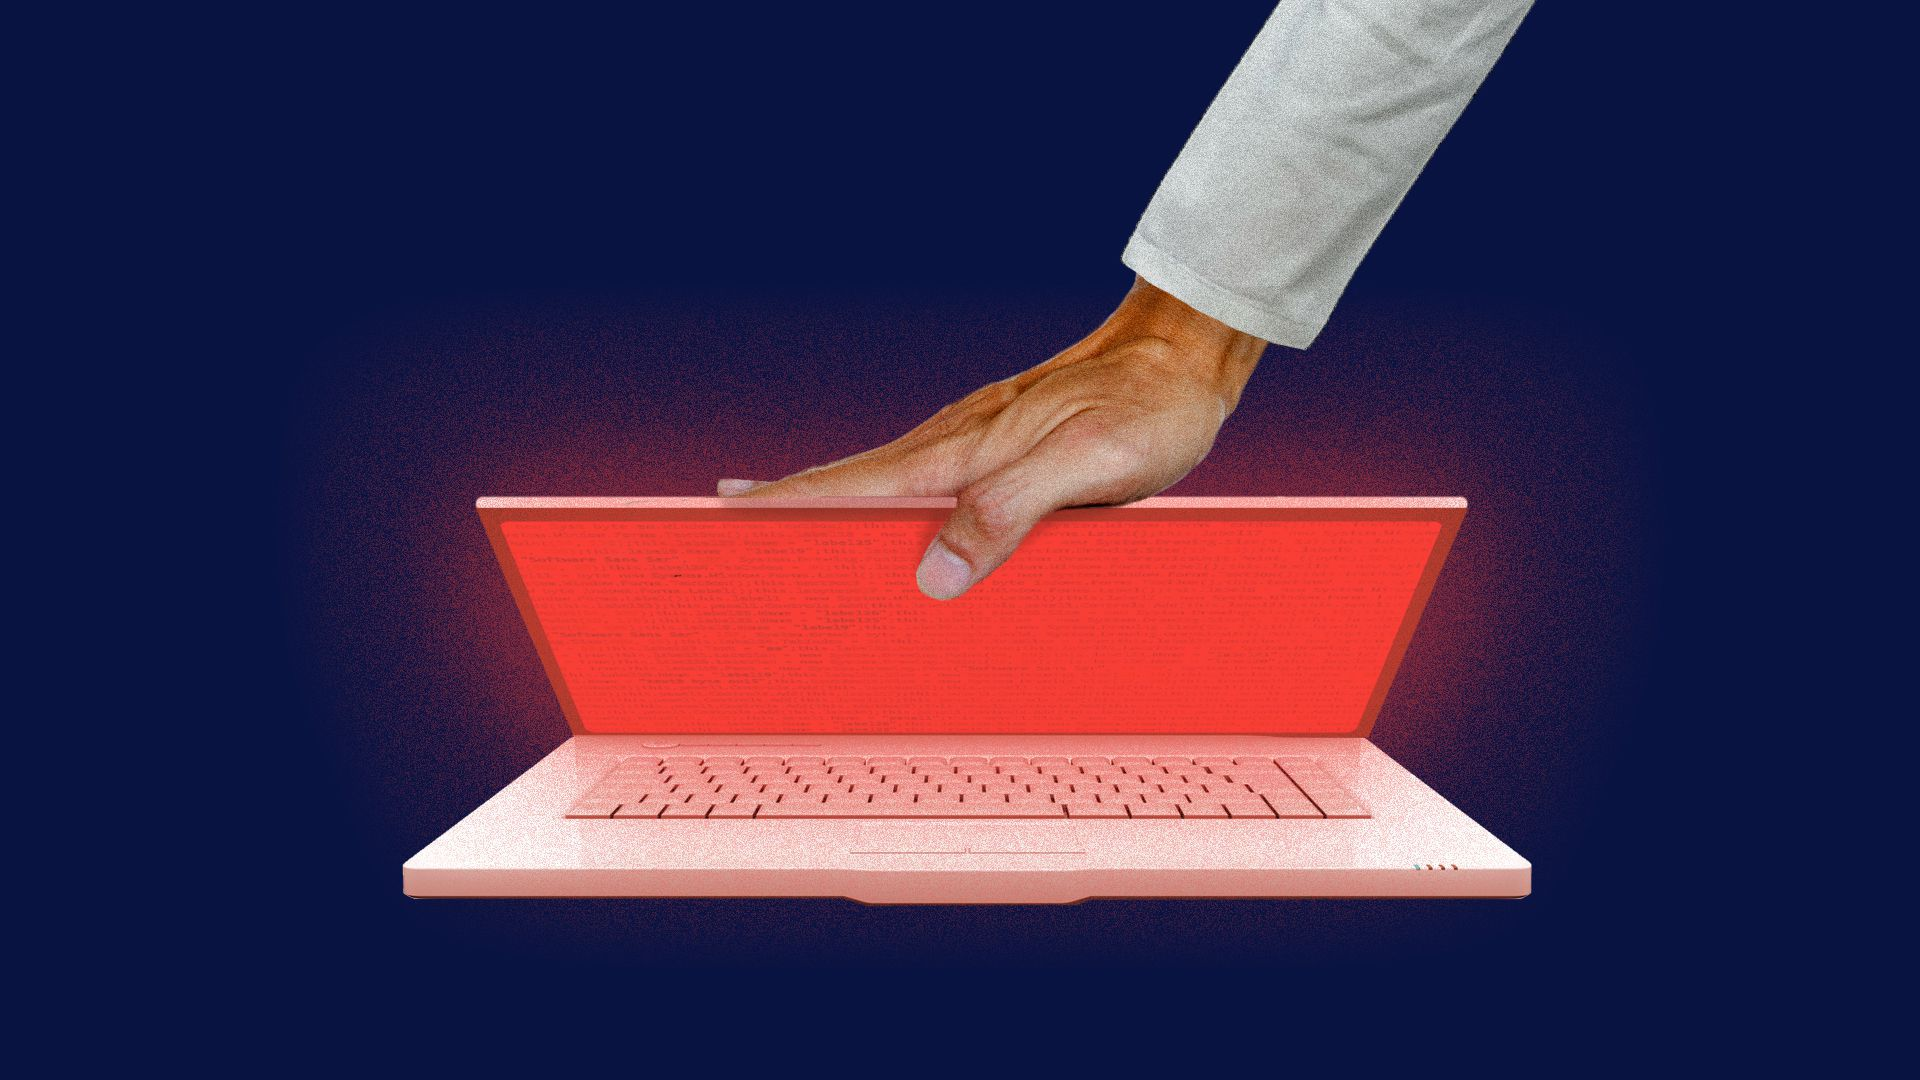 Illustration of a hand closing a laptop with a red screen